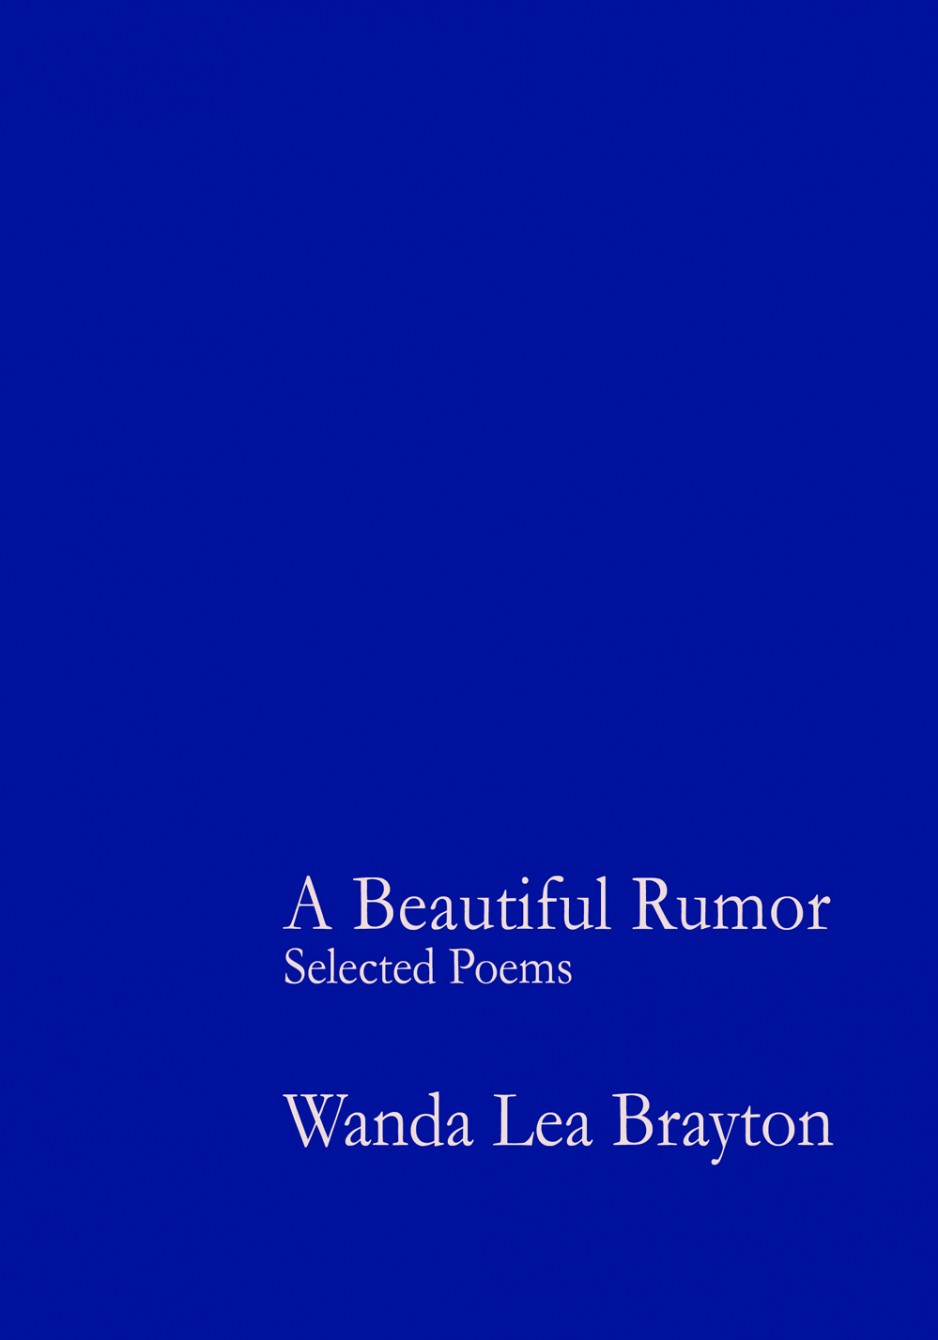 A Beautiful Rumor - Selected Poems